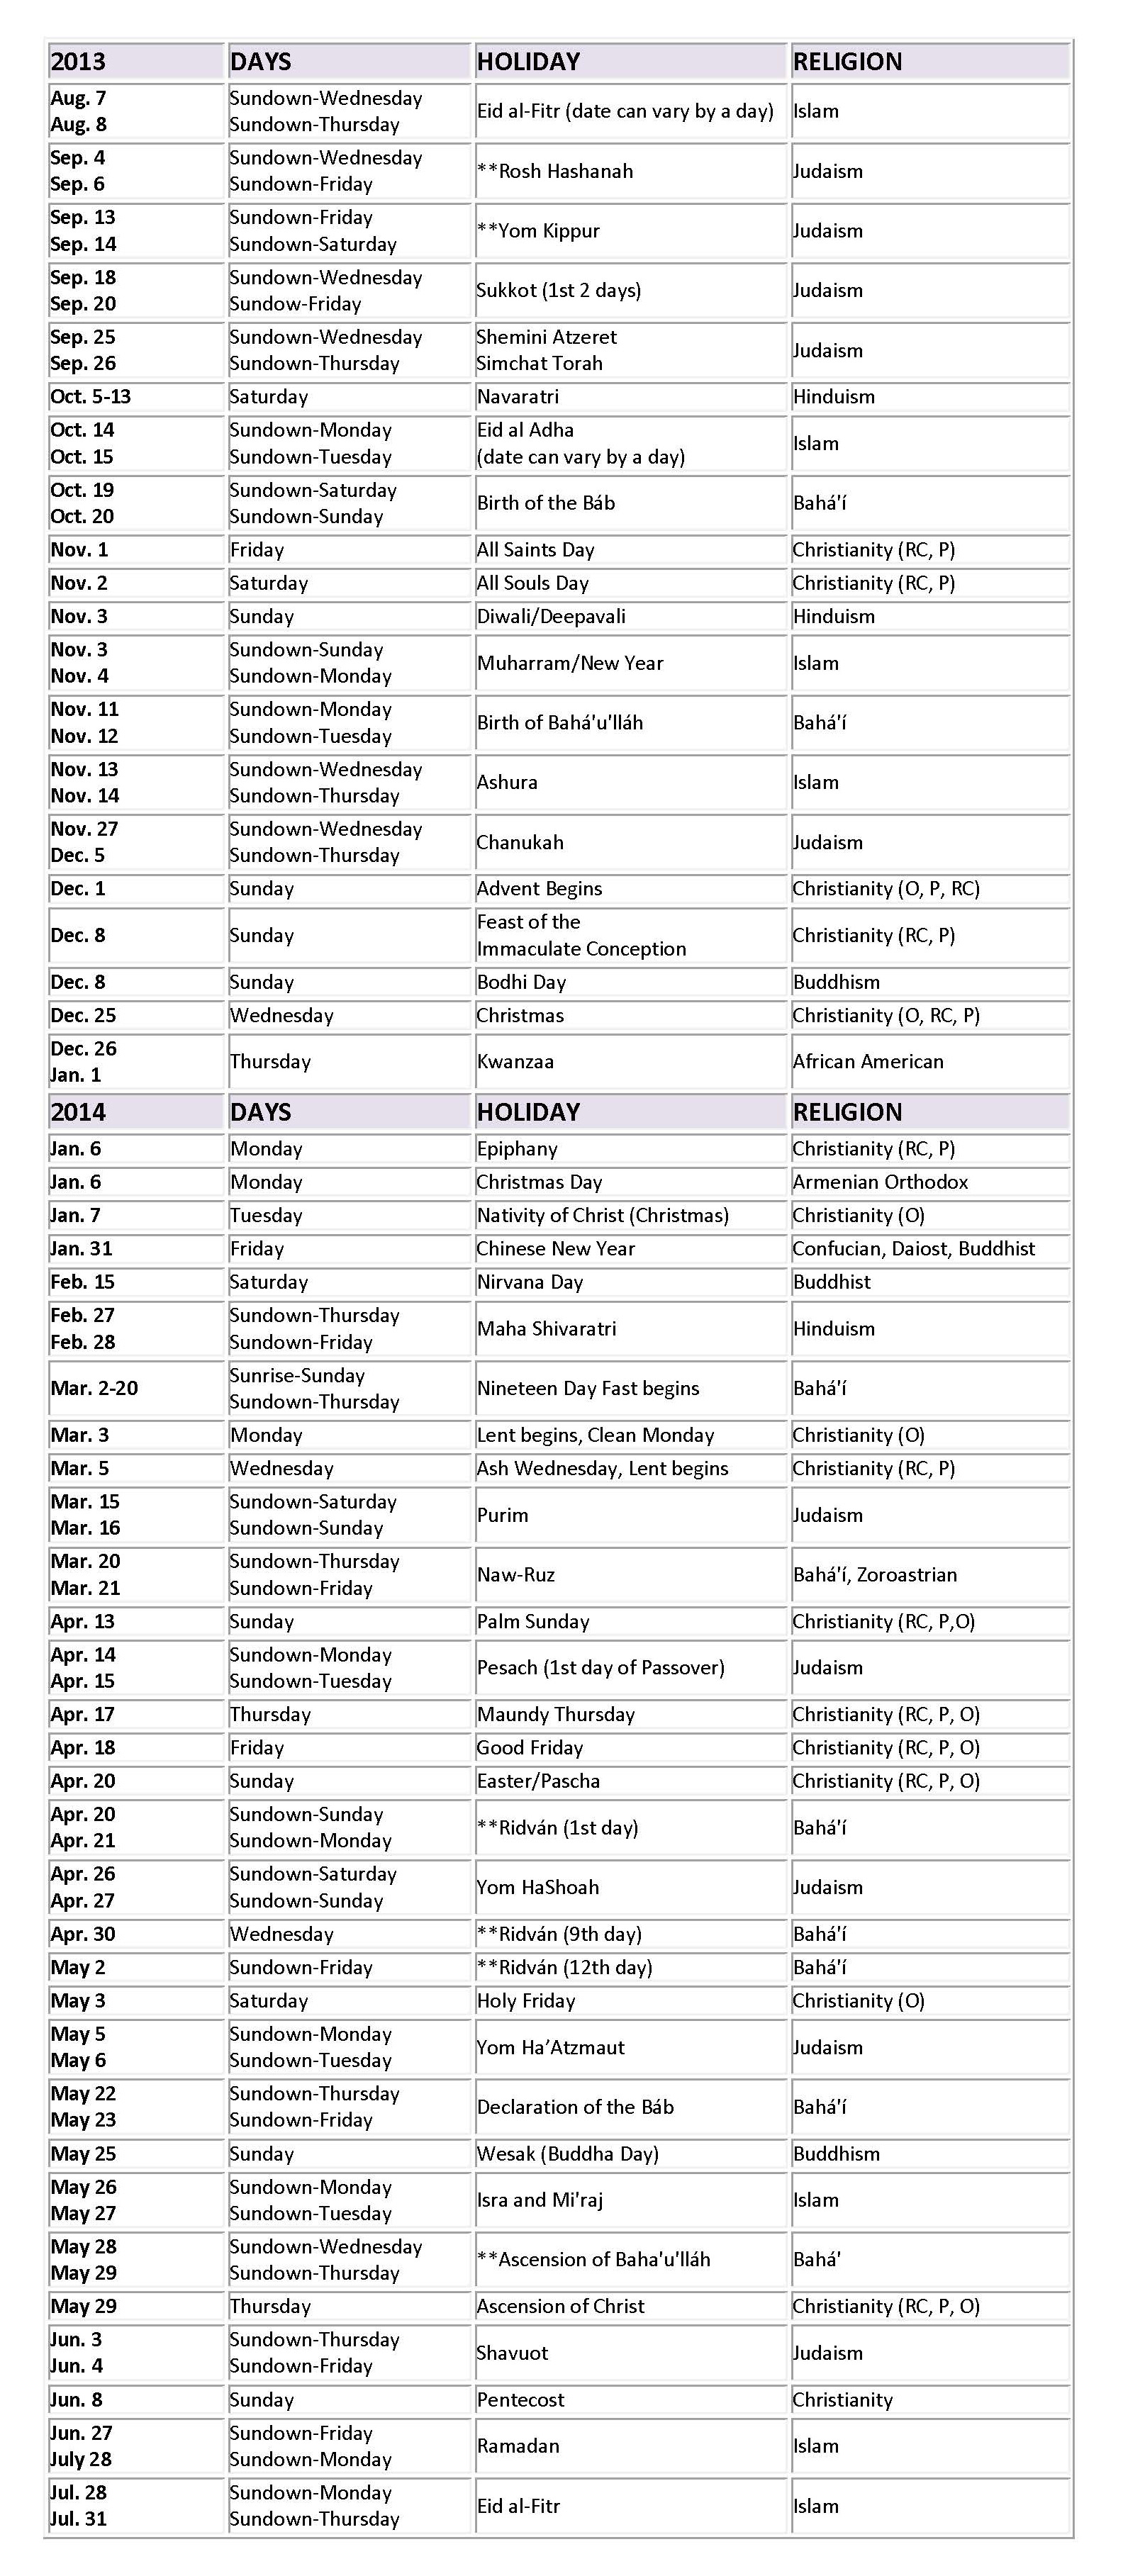 Religious Holidays Calendar Complete List 2013-2014 updated